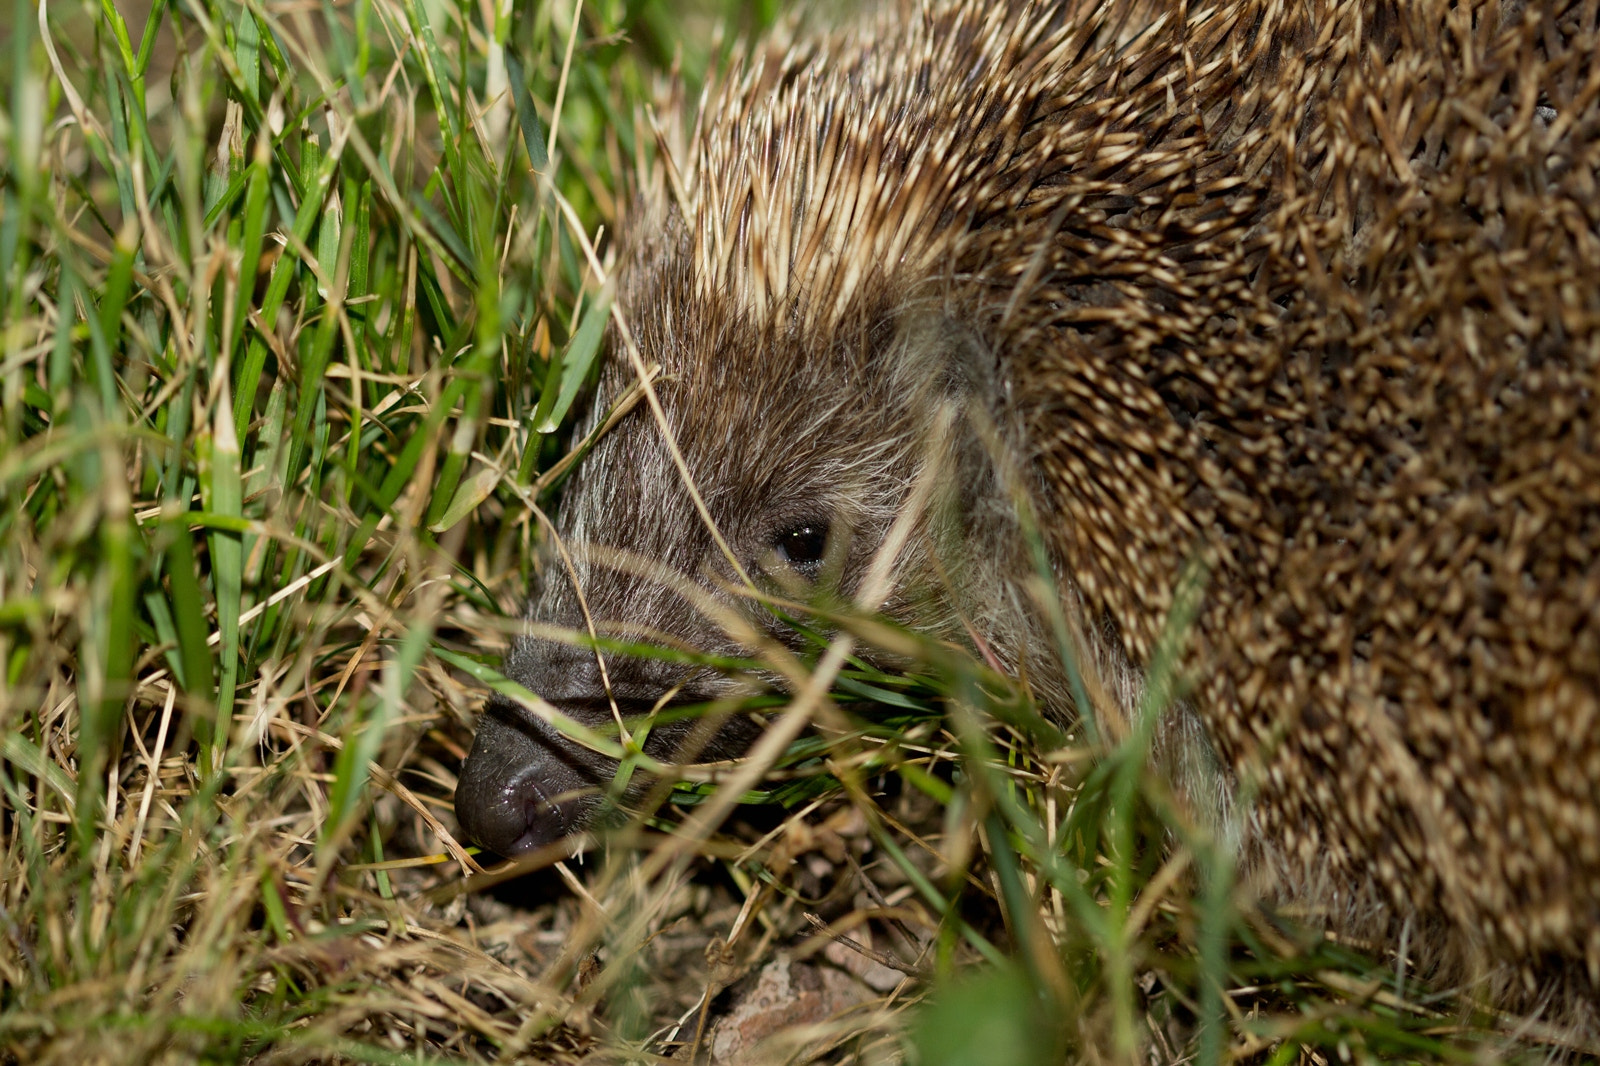 Photograph Igel in der Nacht by Georg Ivan on 500px